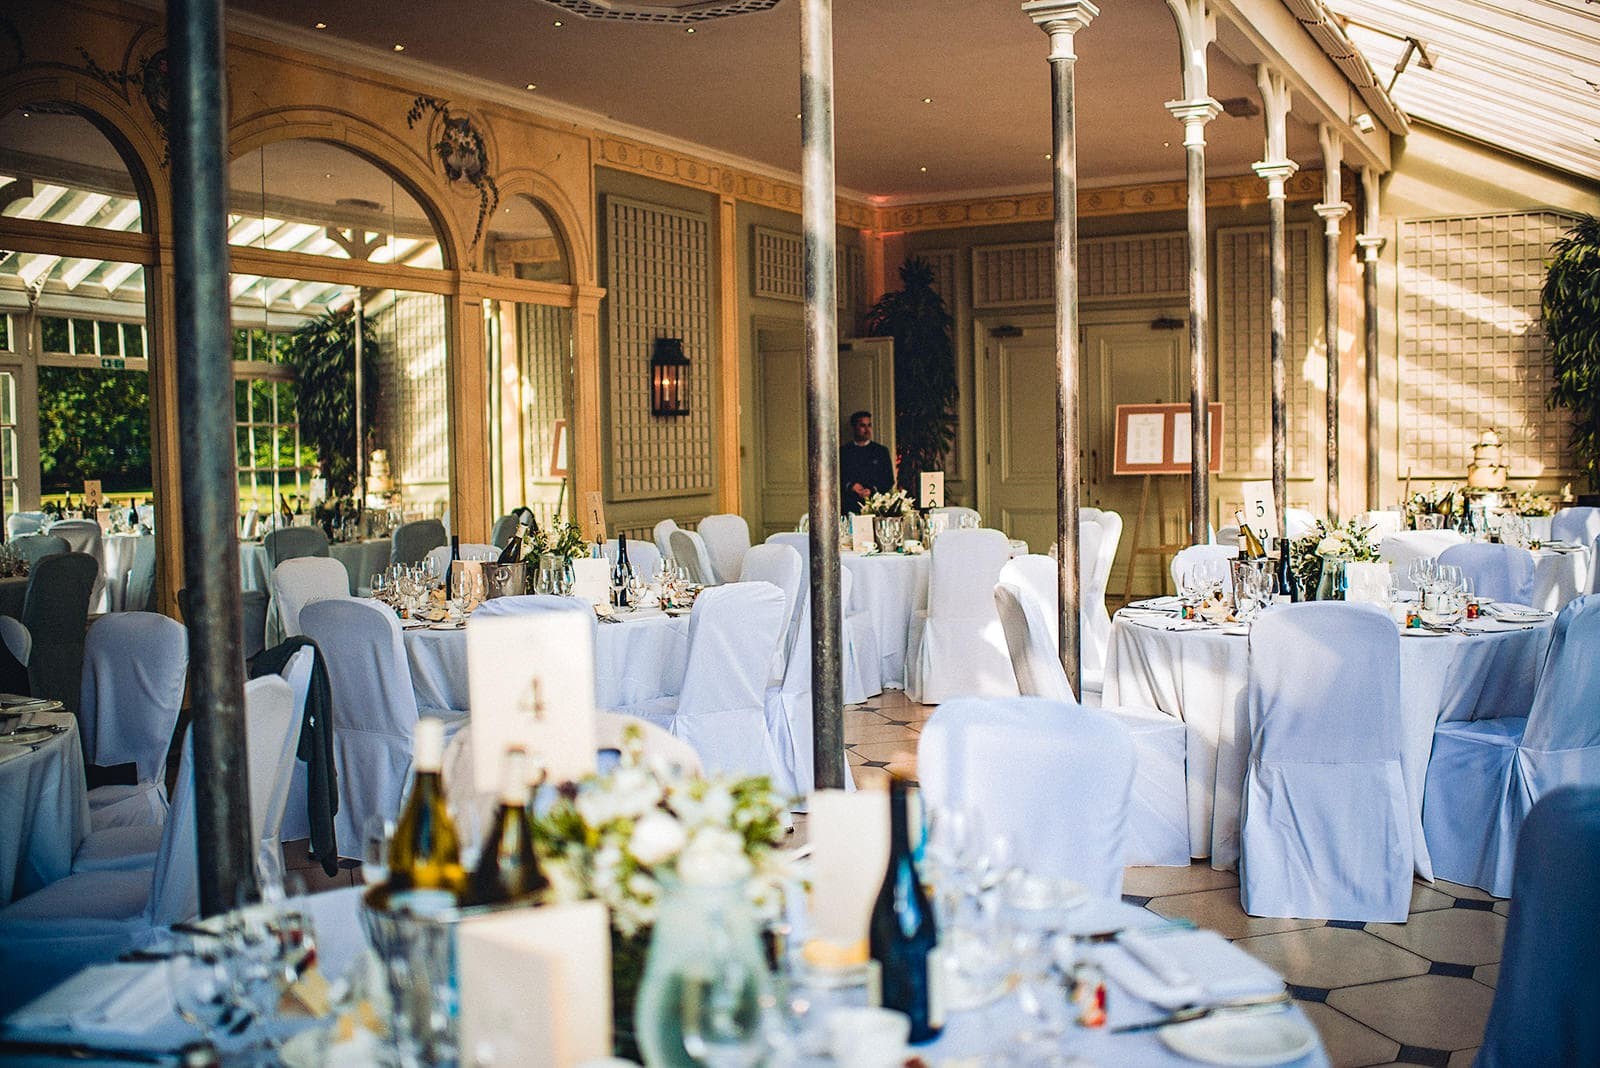 The Terrace Room at the Hurlingham Club set up for an elegant white wedding breakfast